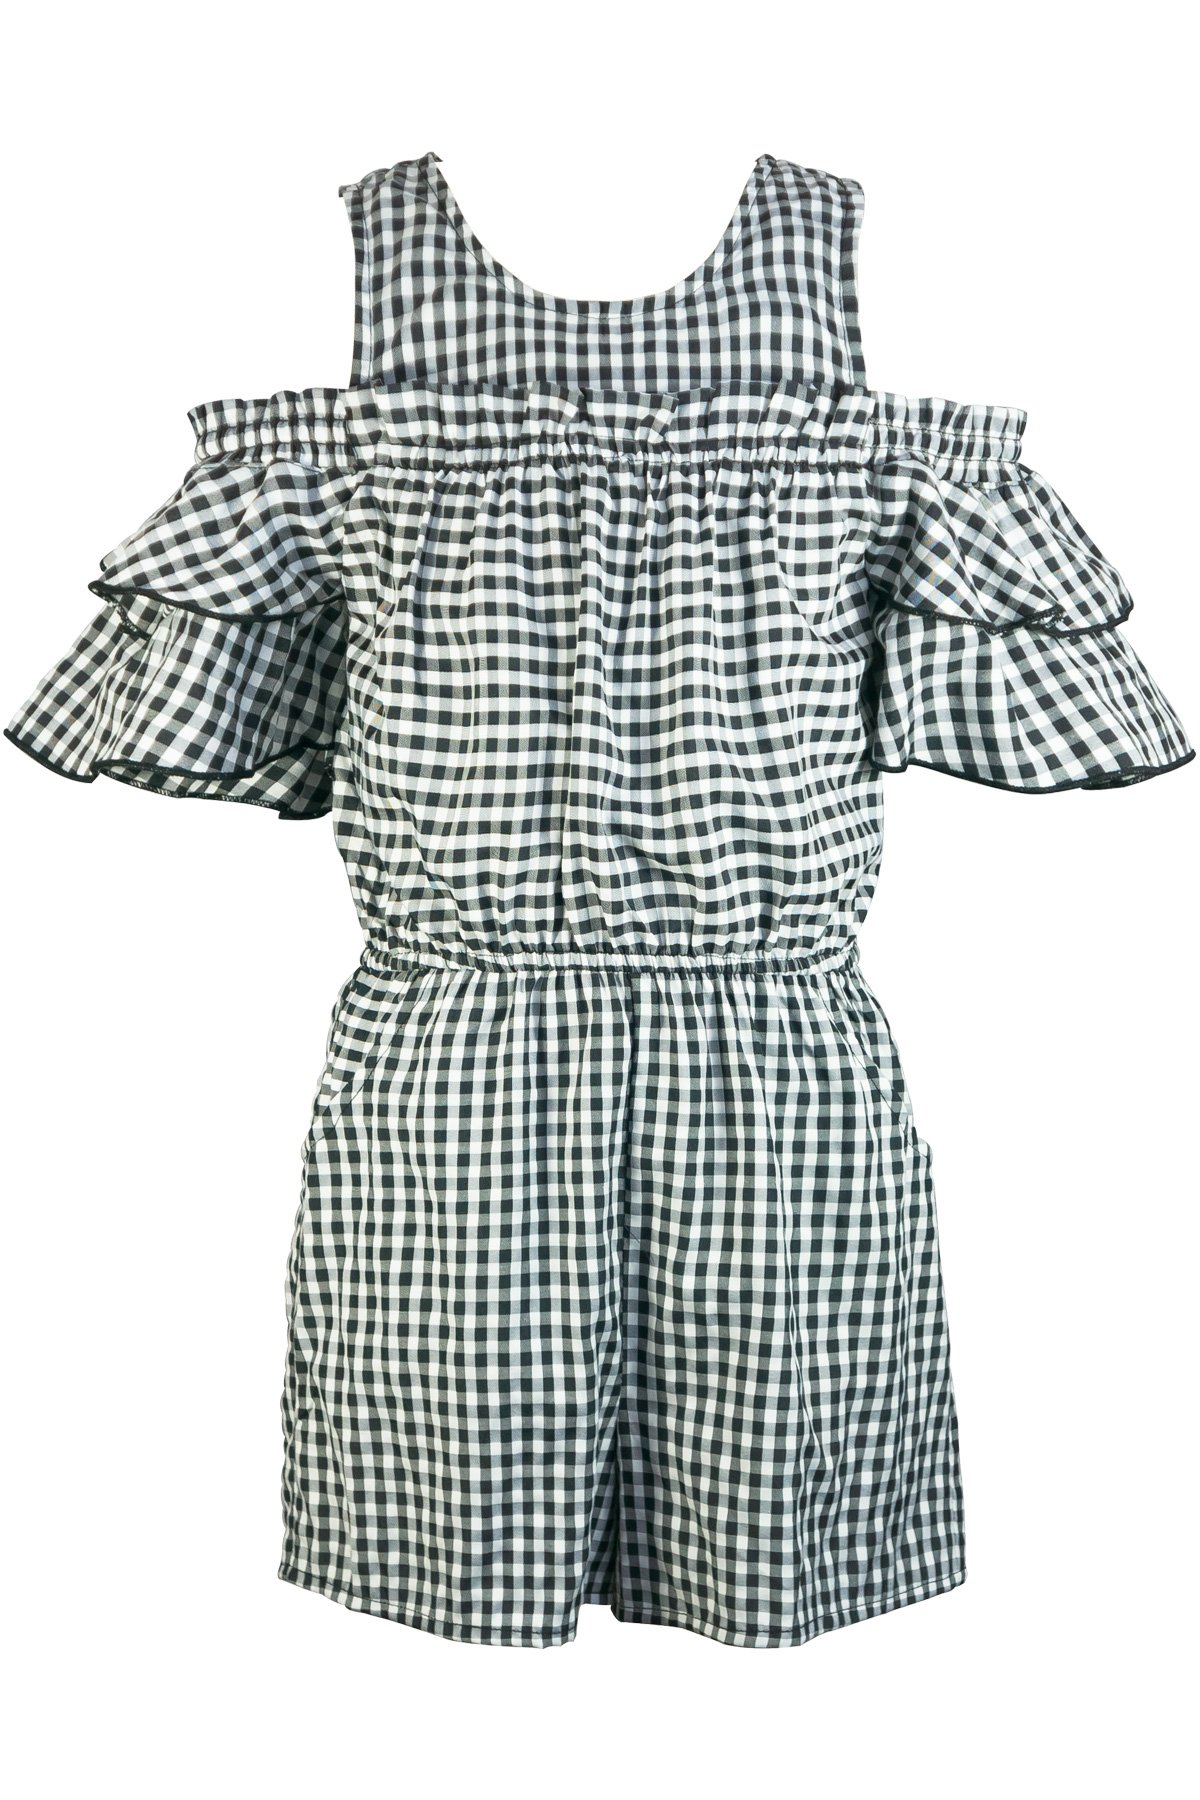 Truly Me, Charming Rompers (with Many Options), 4-6X, 7-16 (14, Black/White)